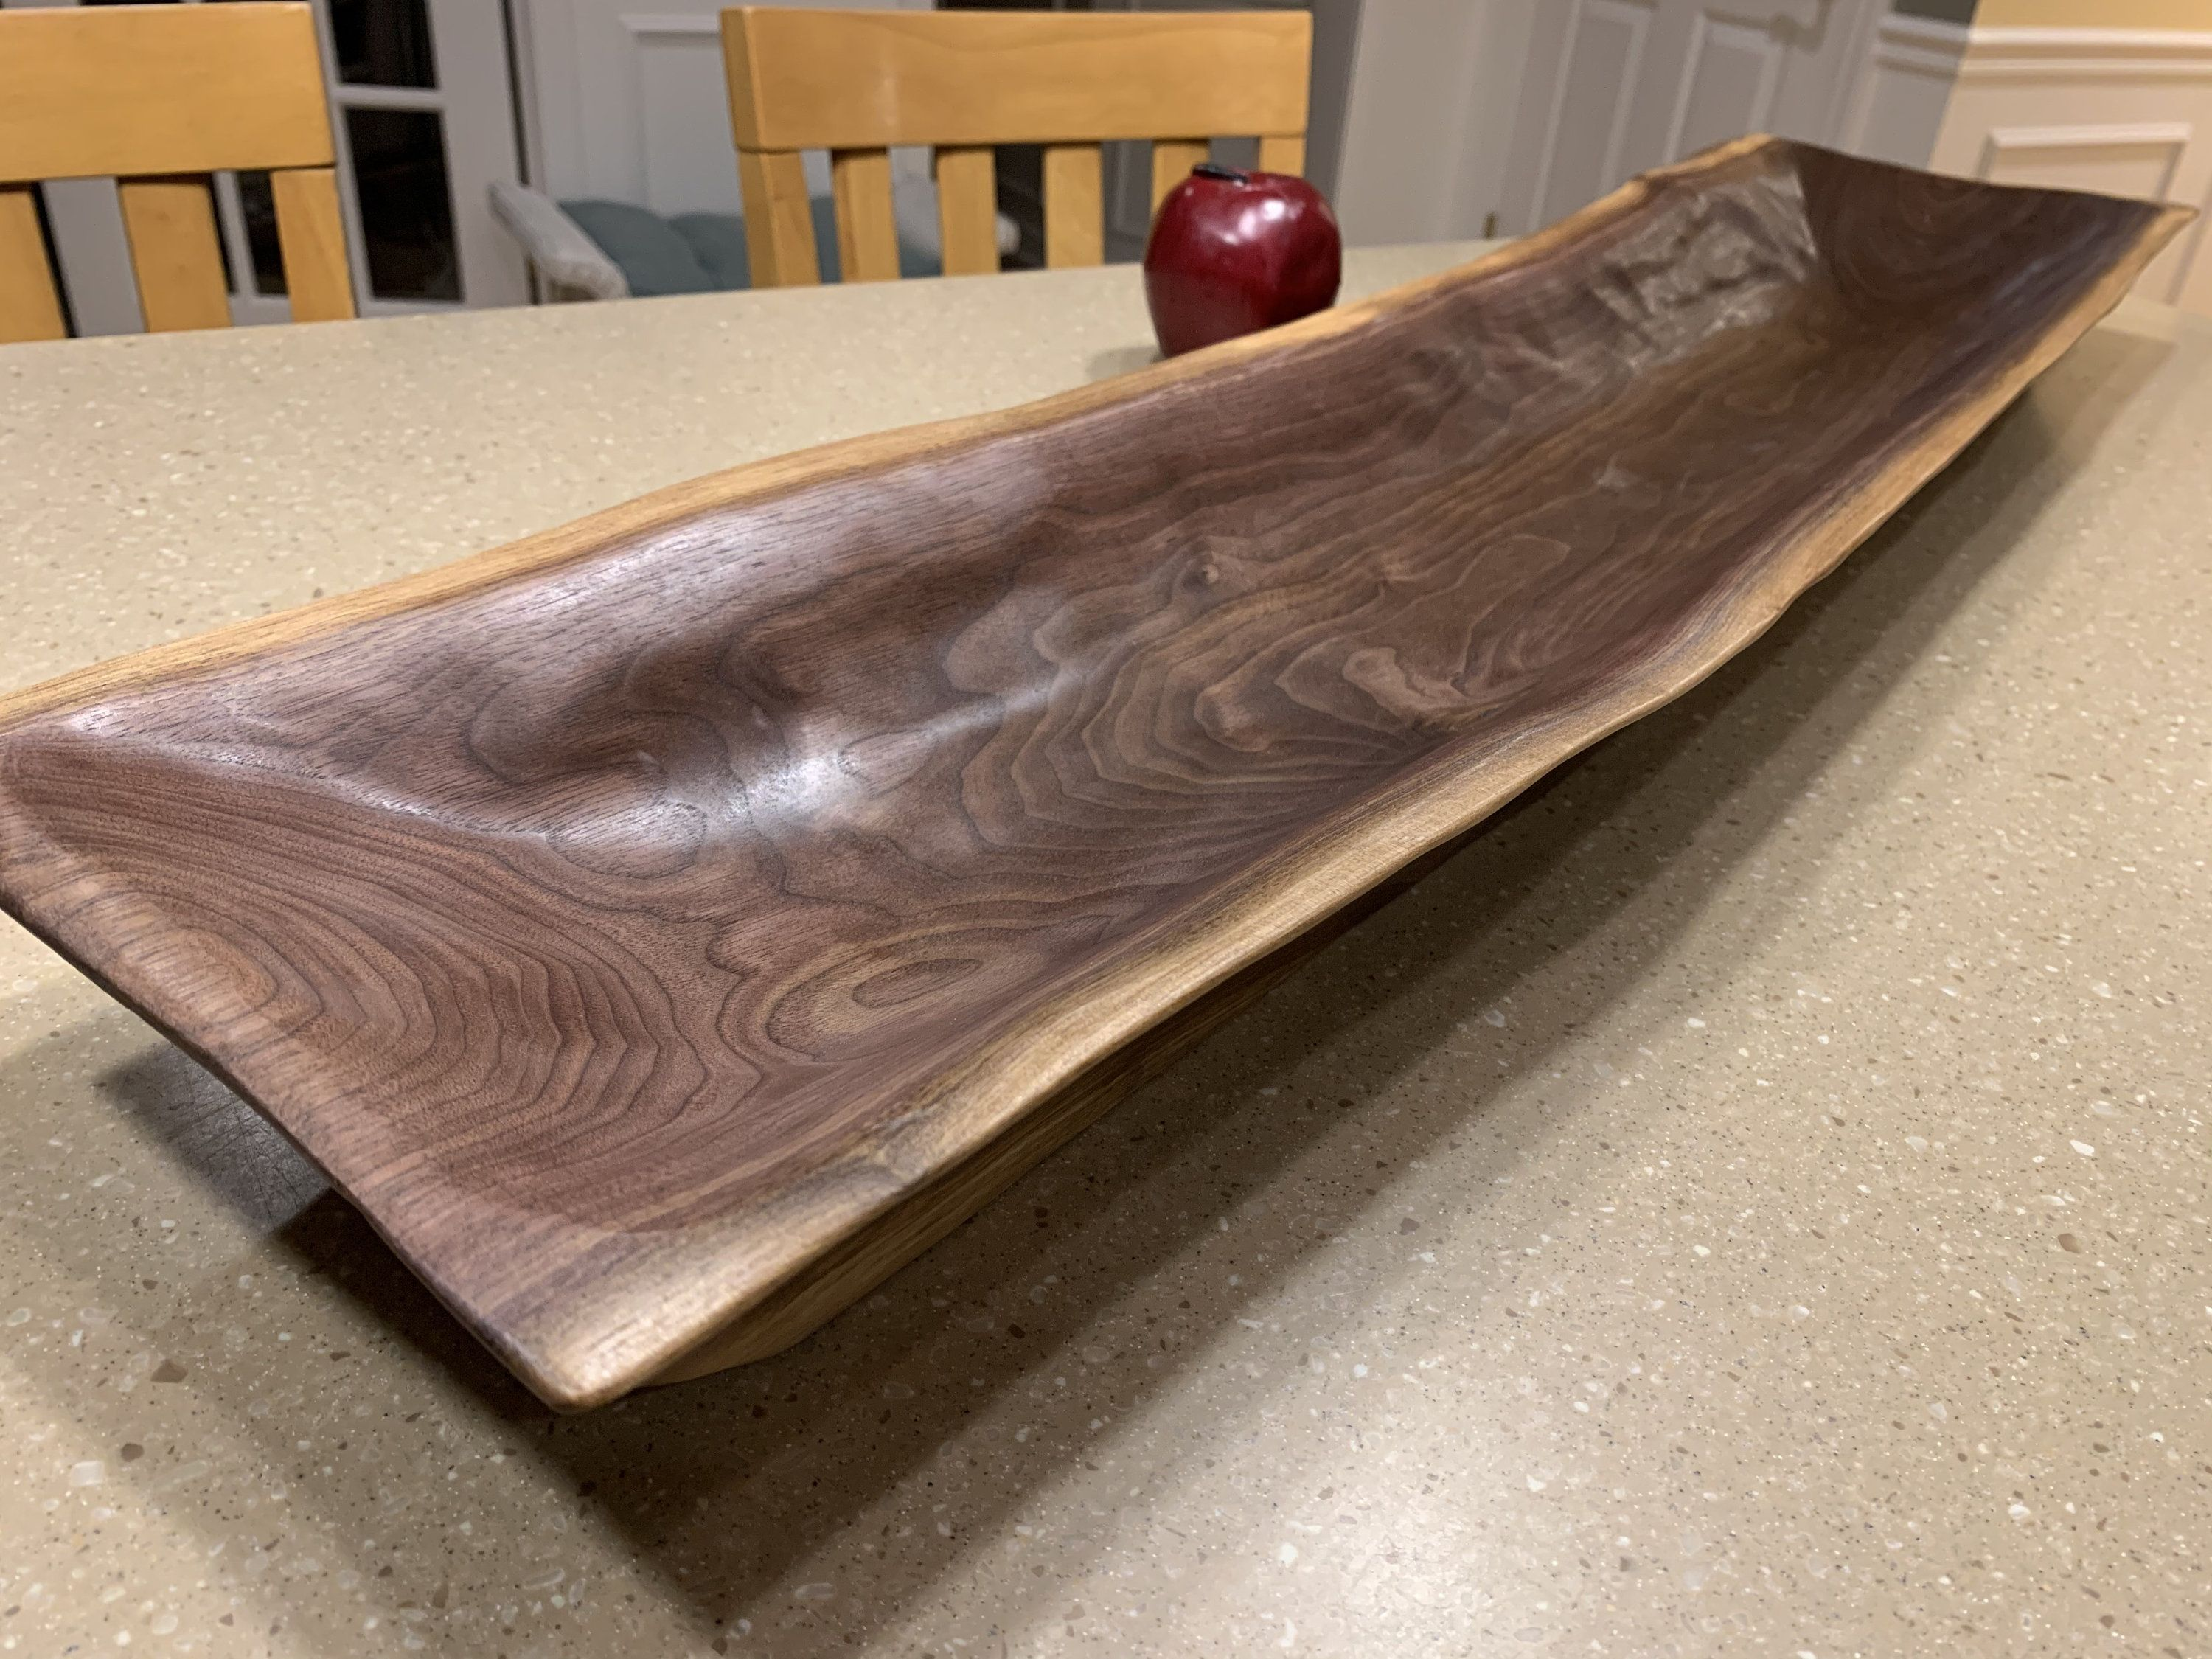 Rustic Wooden Trough Bowl large